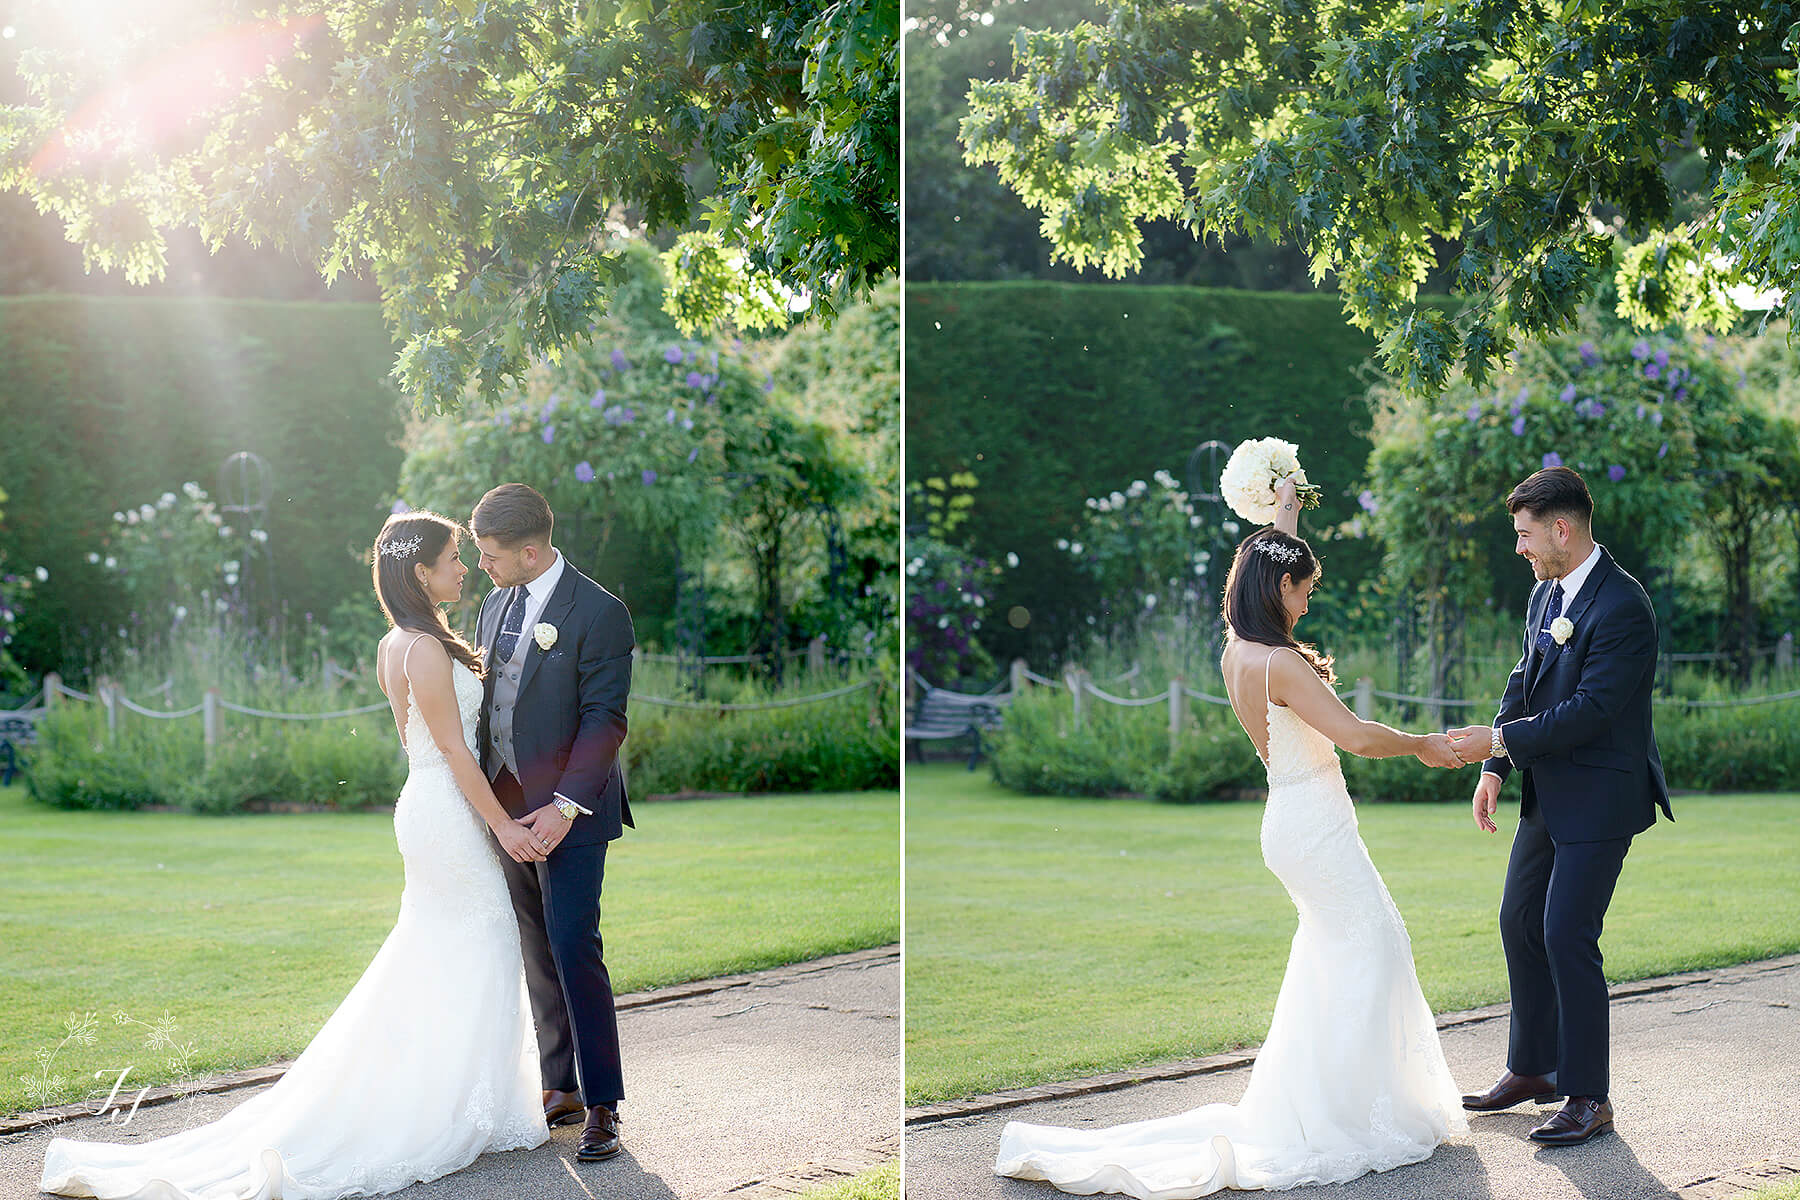 Samantha & Cameron's wedding photograph of them in the walled garden at Gaynes Park